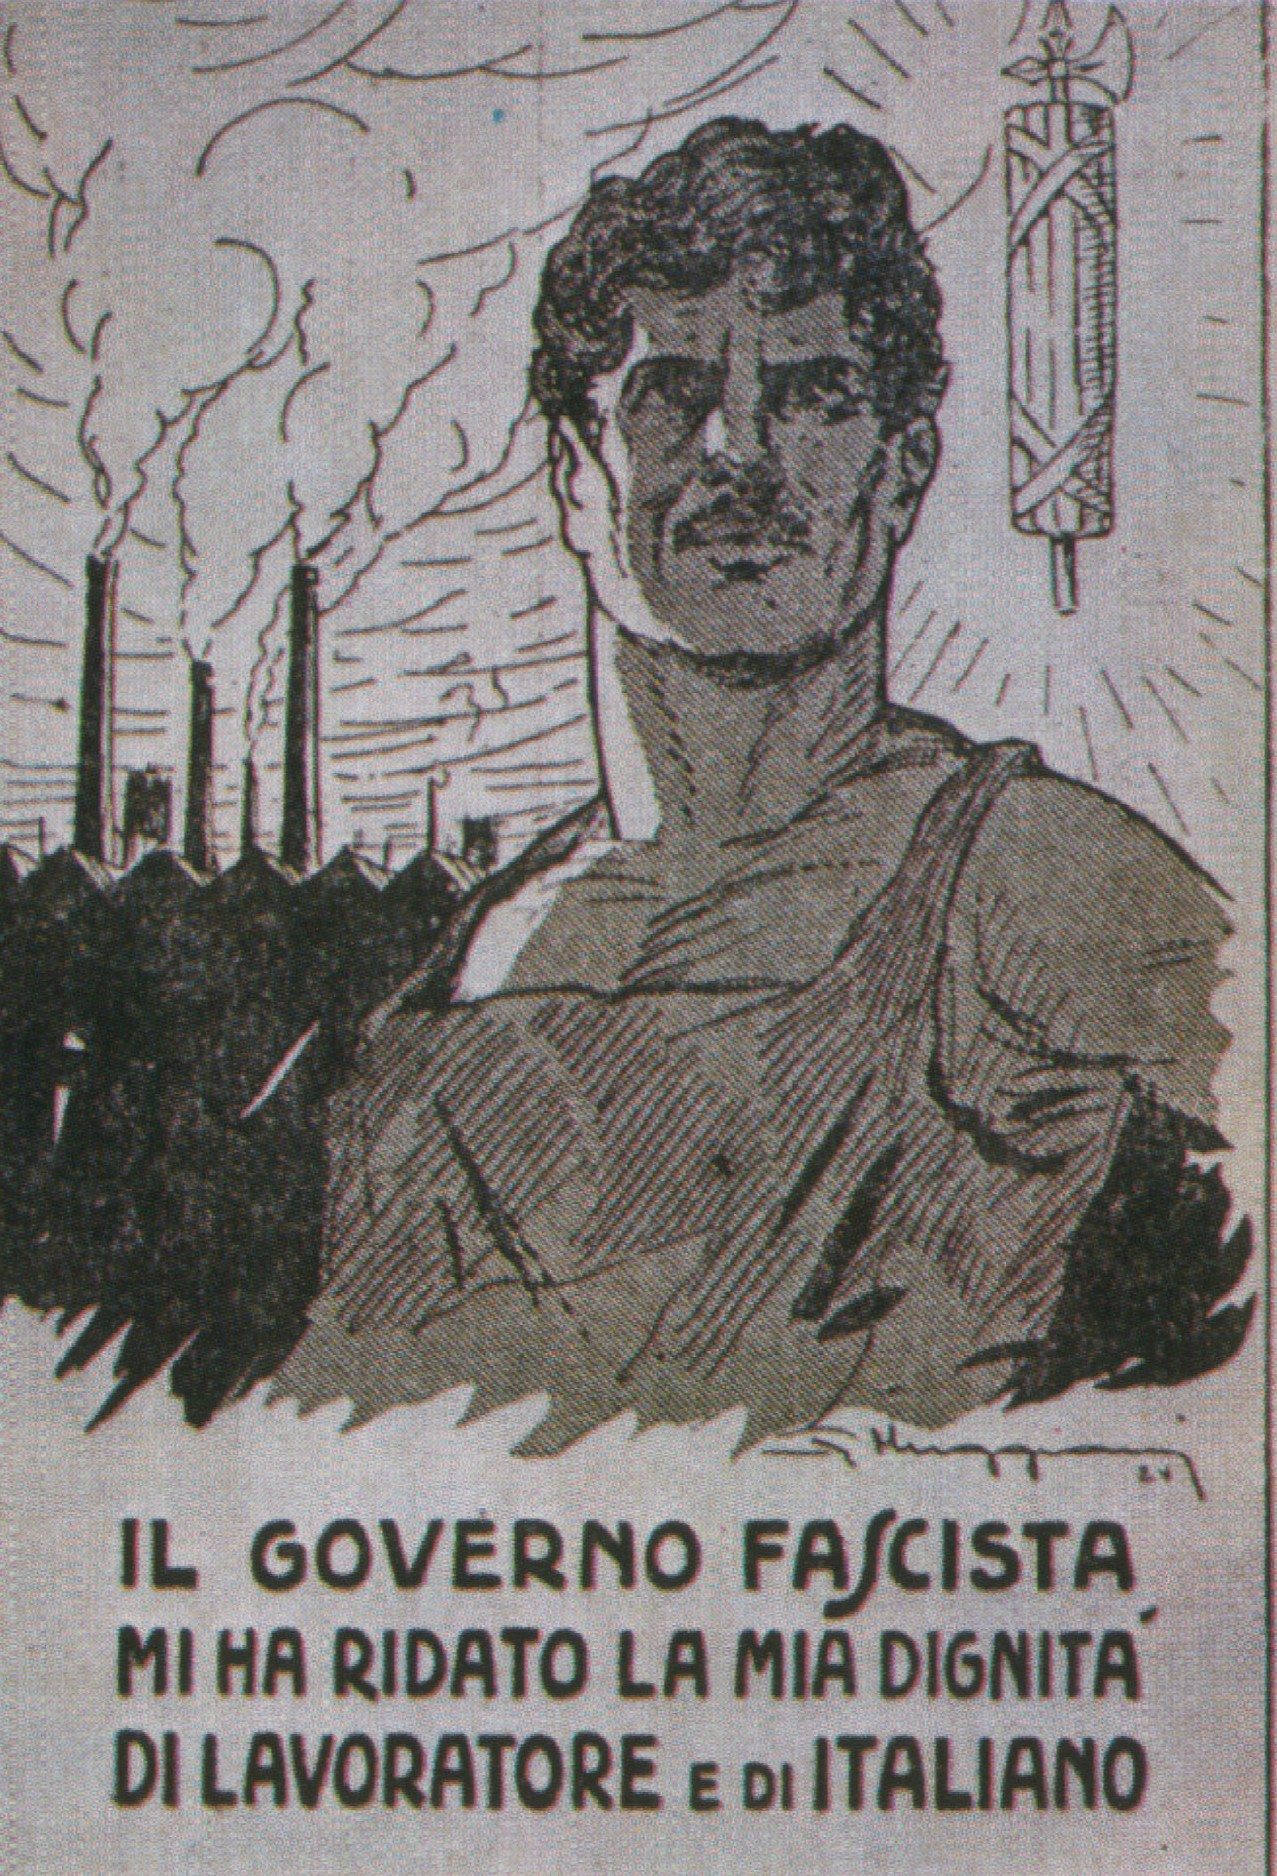 Italy. The fascist government has given me back my dignity as a worker ...